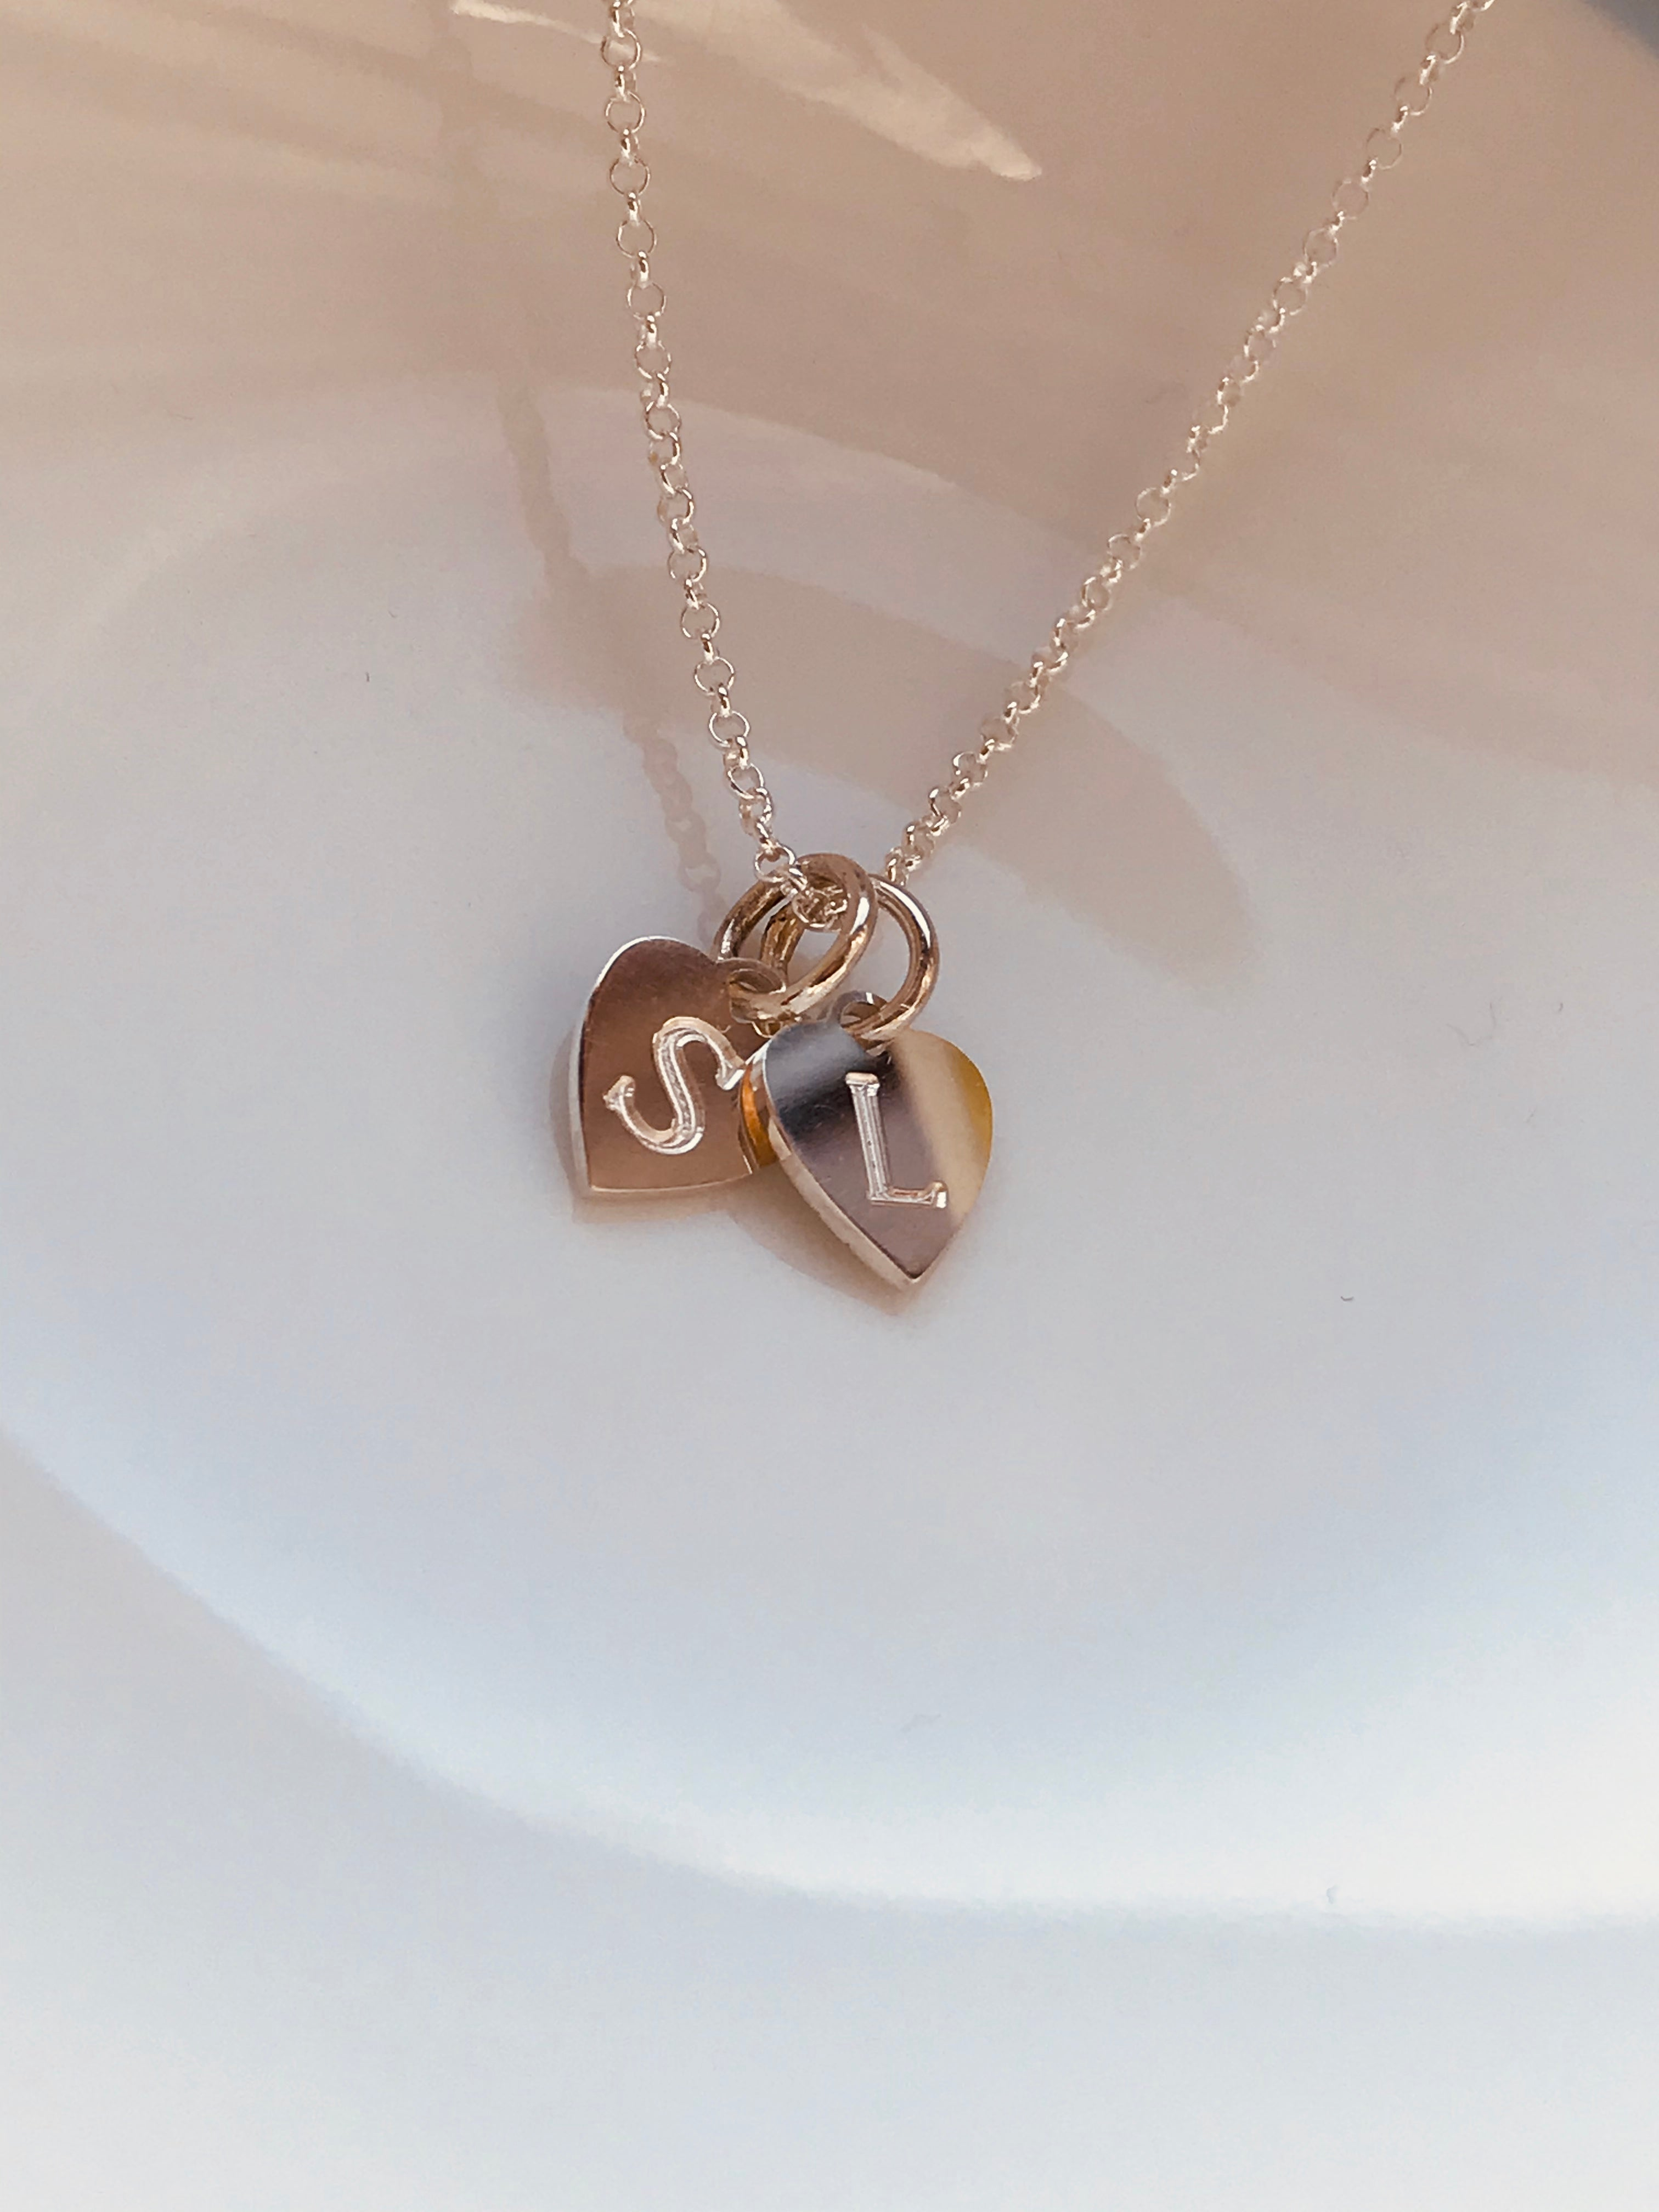 STACKED HEARTS necklace - BYVELA designer jewellery in silver and gold